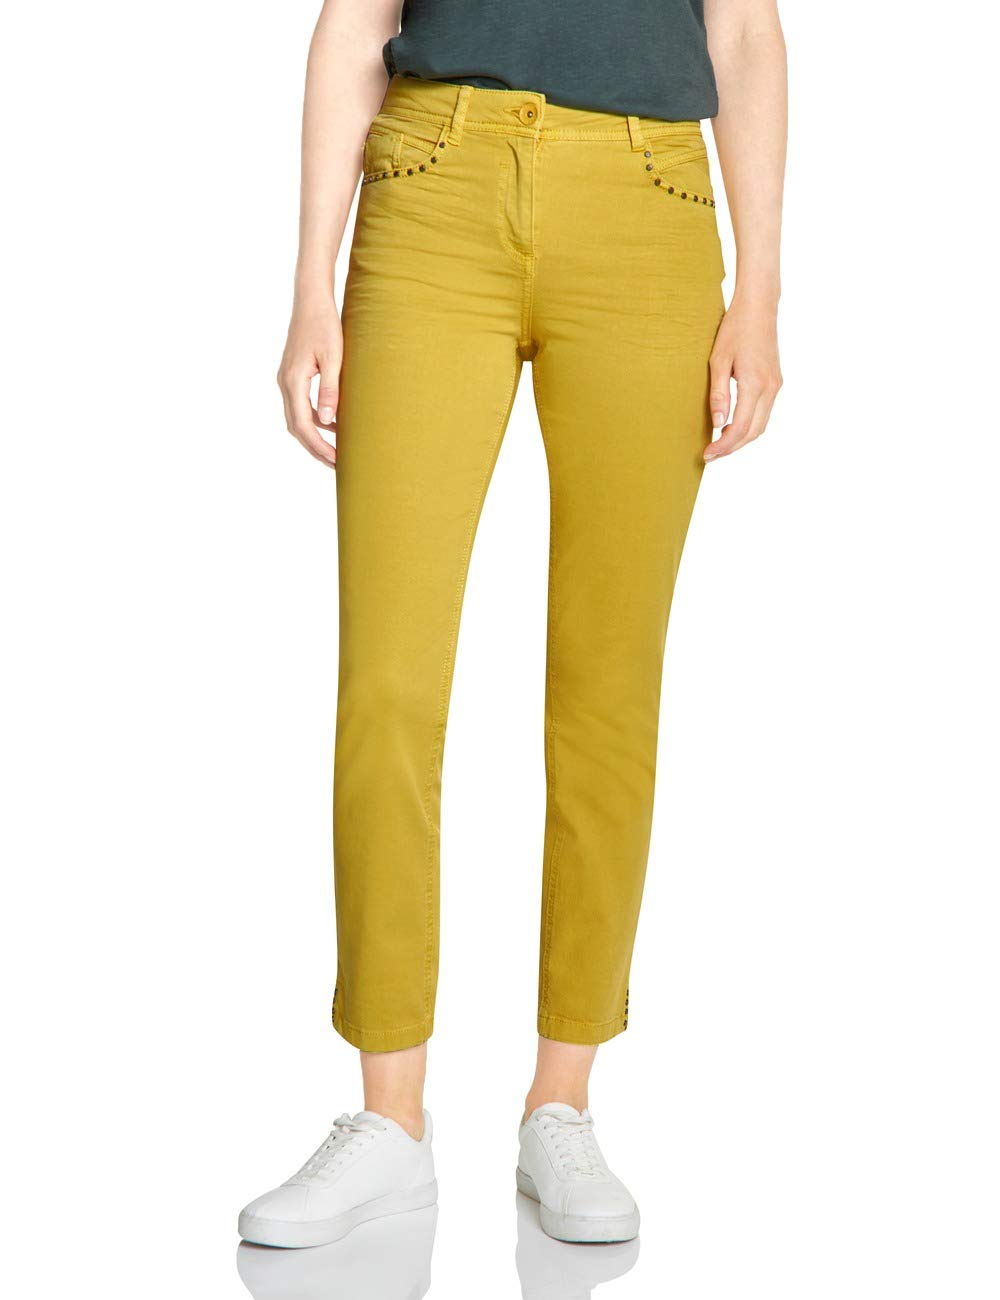 Fit 372403 JeanJauneceylon 11892W32L28taille Slim Fabricant32Femme Yellow Toronto Cecil gbYvyf67